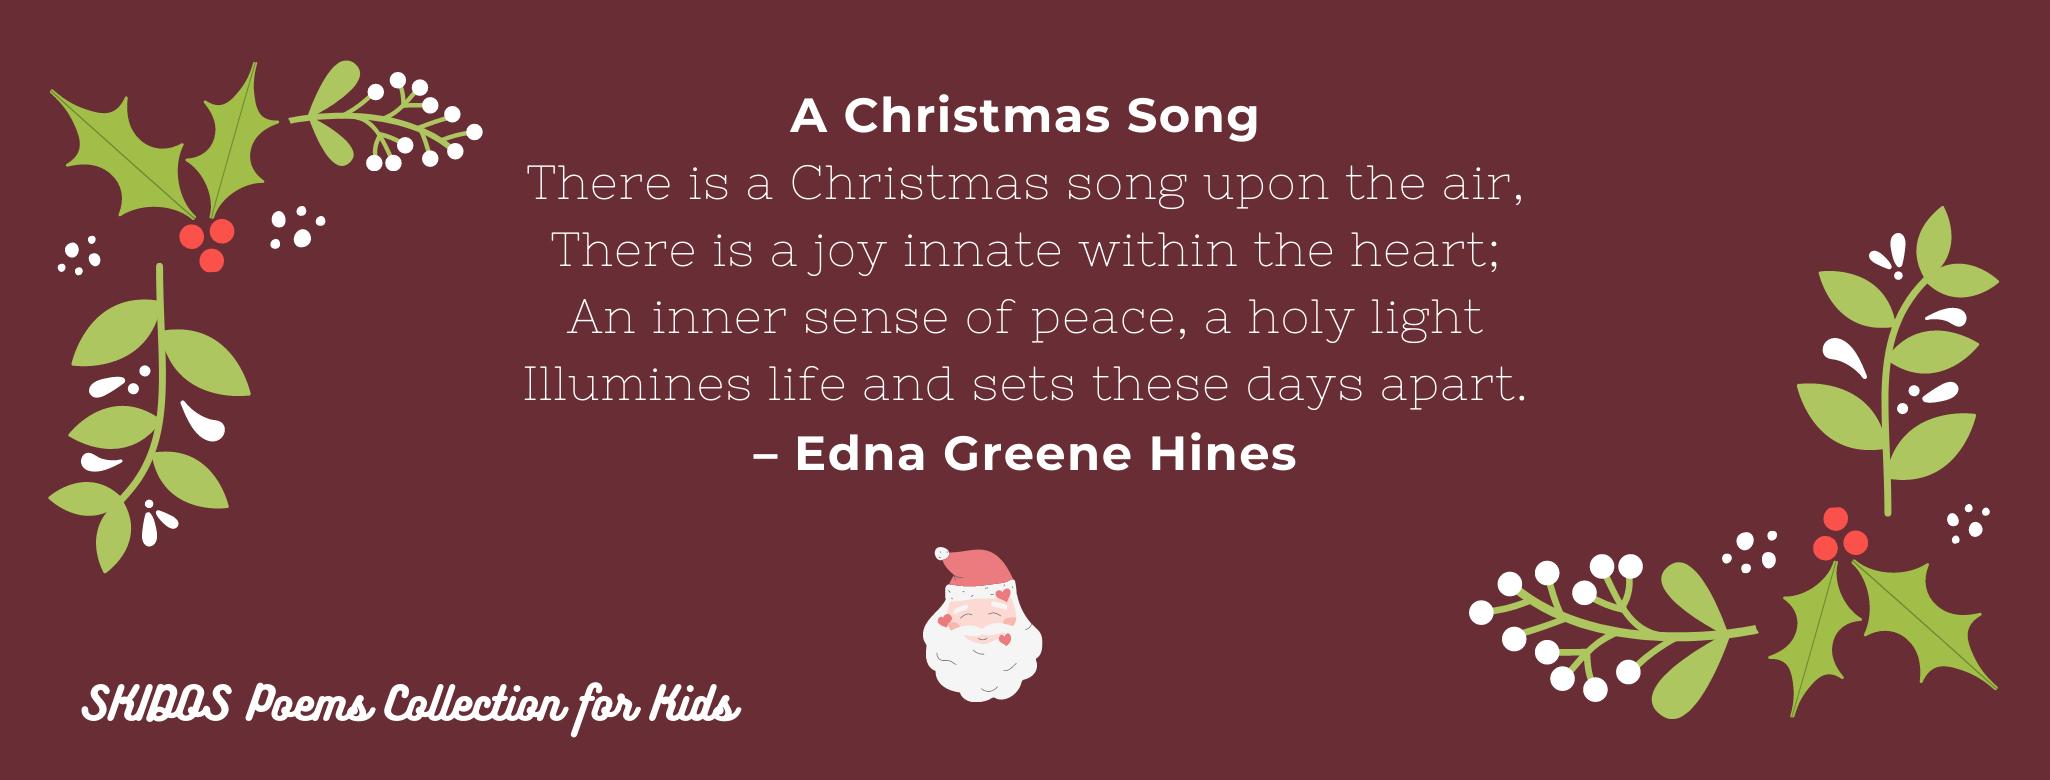 Christmas Poems Collection for Kids